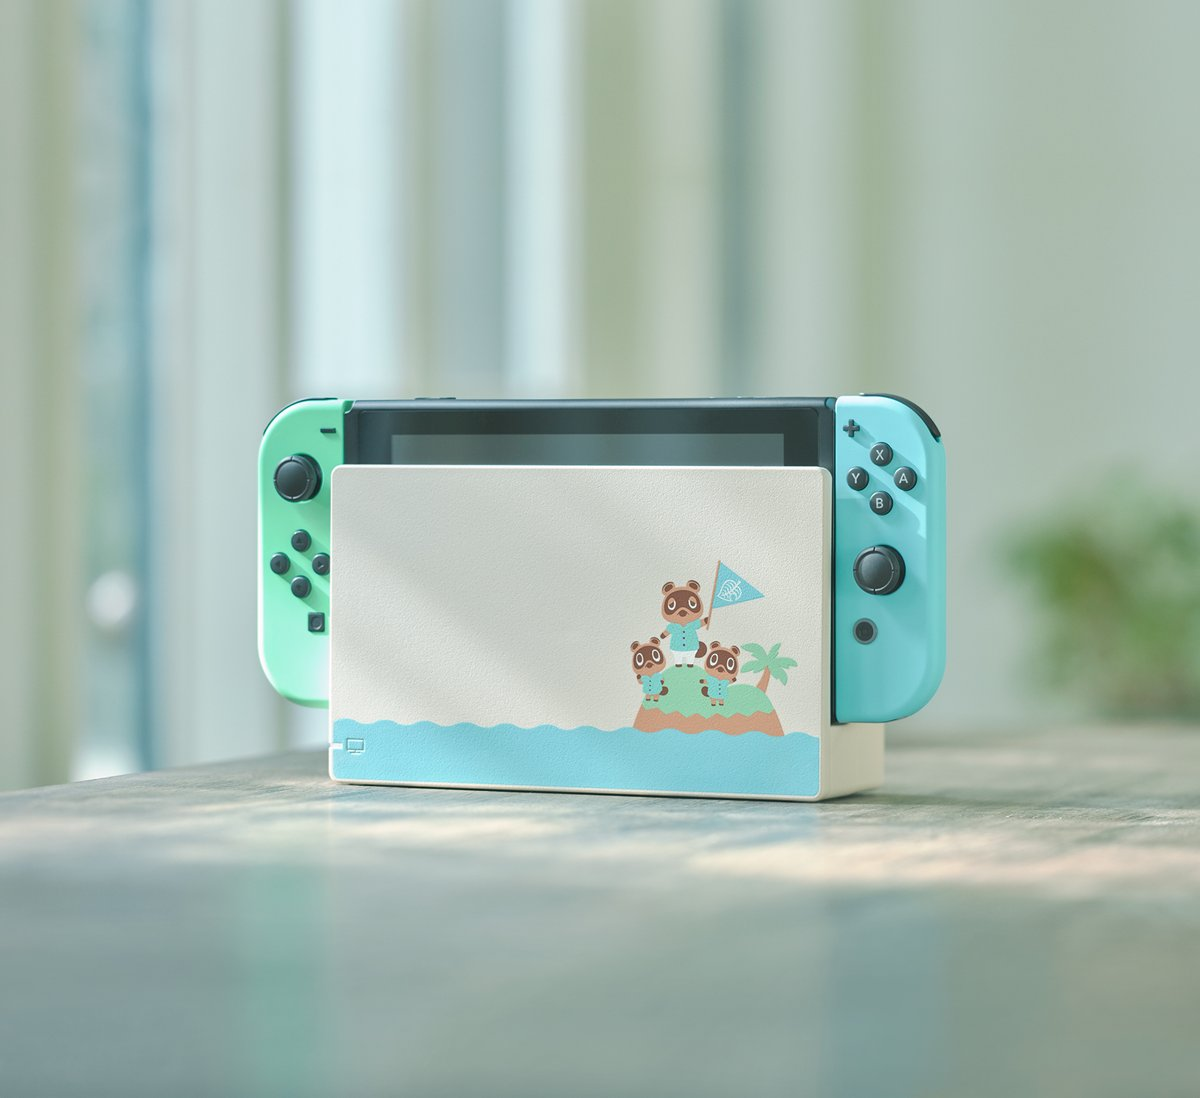 Update: Animal Crossing Switch Console Is Back In Stock At Walmart - GameSpot